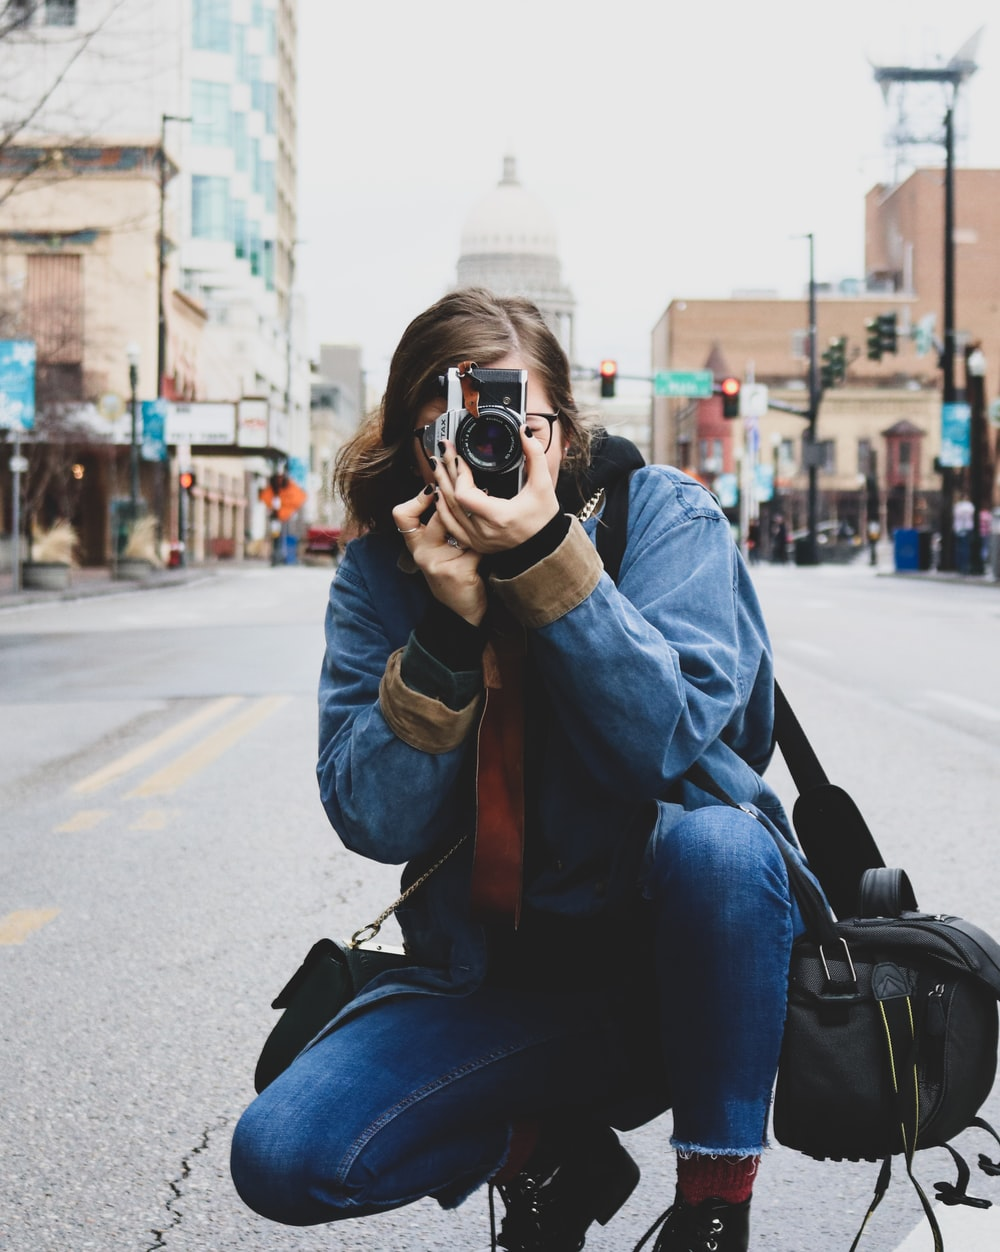 woman in blue denim jeans taking picture on road